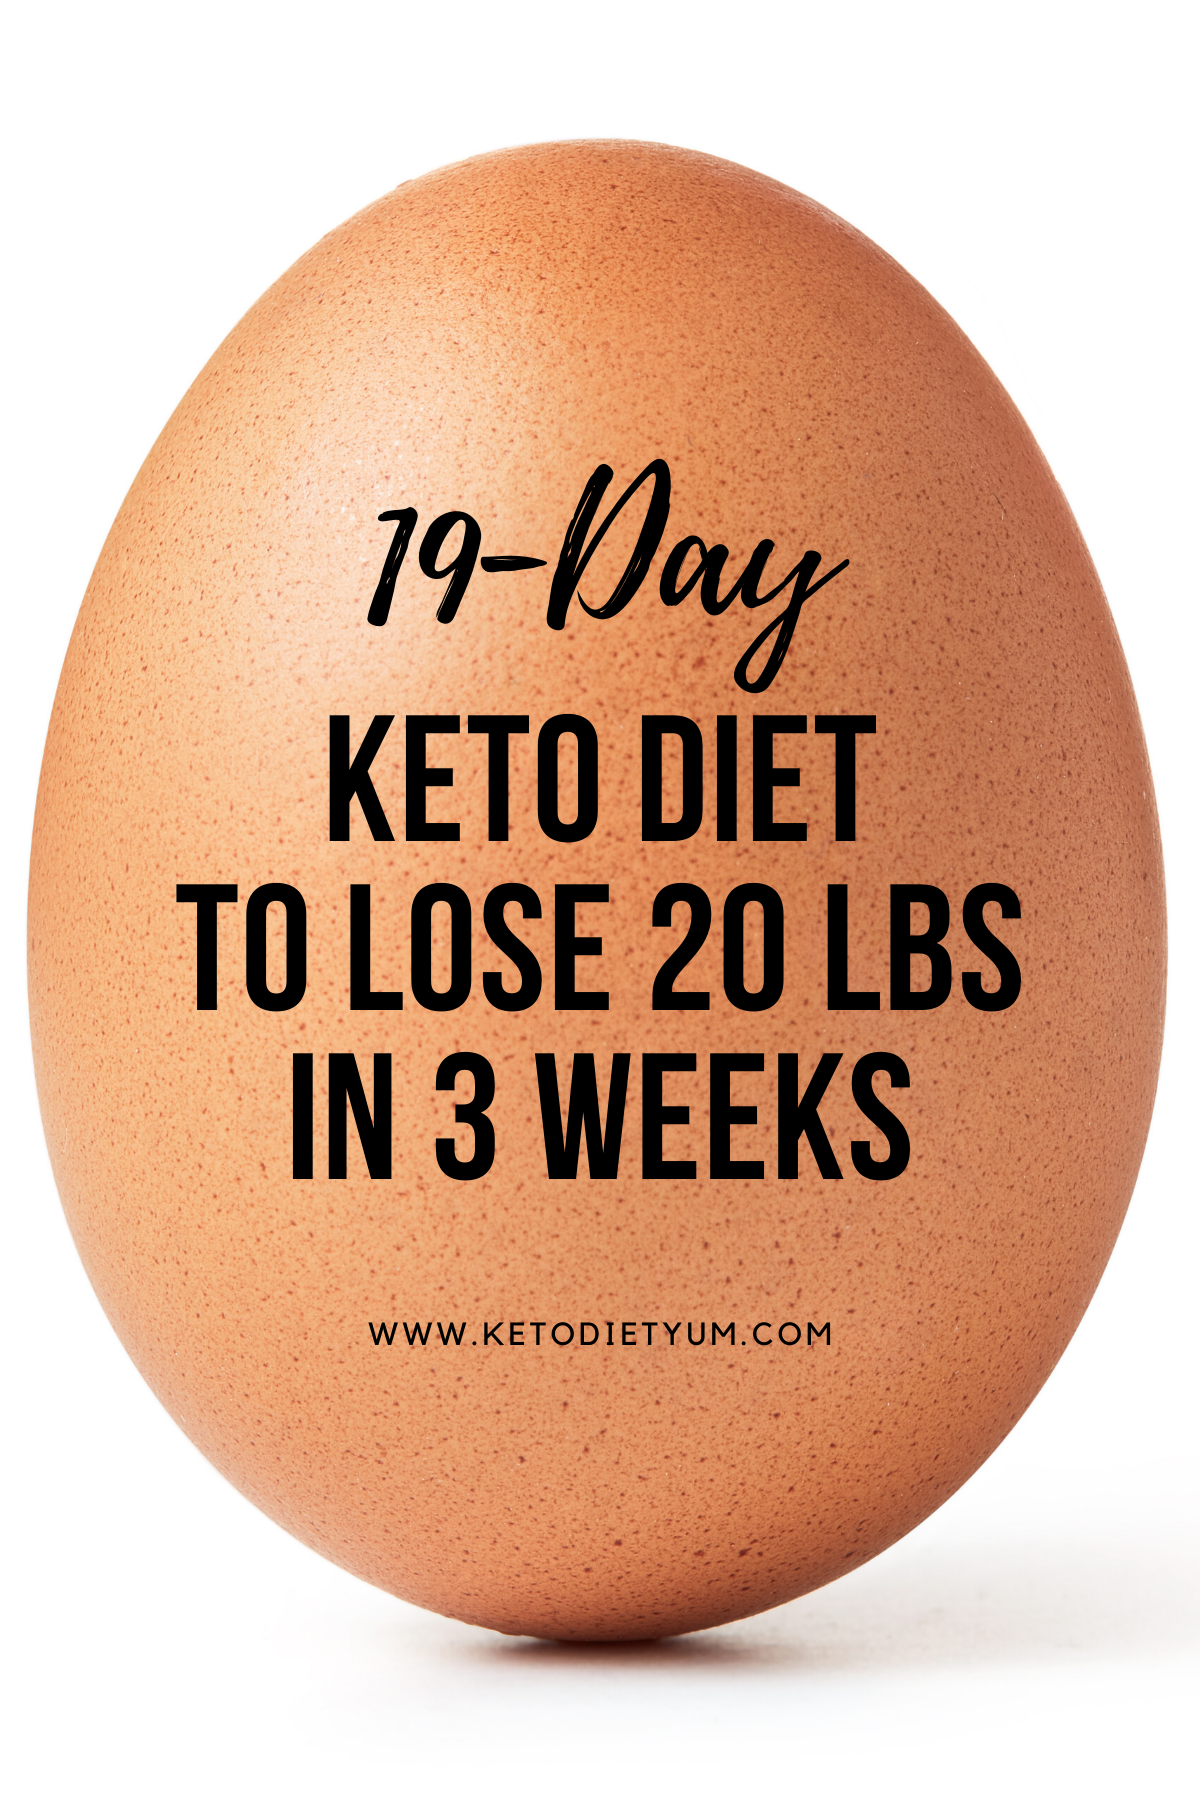 Looking for a simple, easy ketogenic diet meal plan to start? Here's a 19-day low-carb keto diet plan with recipes, tips and tricks to help you reach ketosis, lose weight and burn 10lbs of fat in 1 week. #ketodiet #loseweight #ketogenicdiet